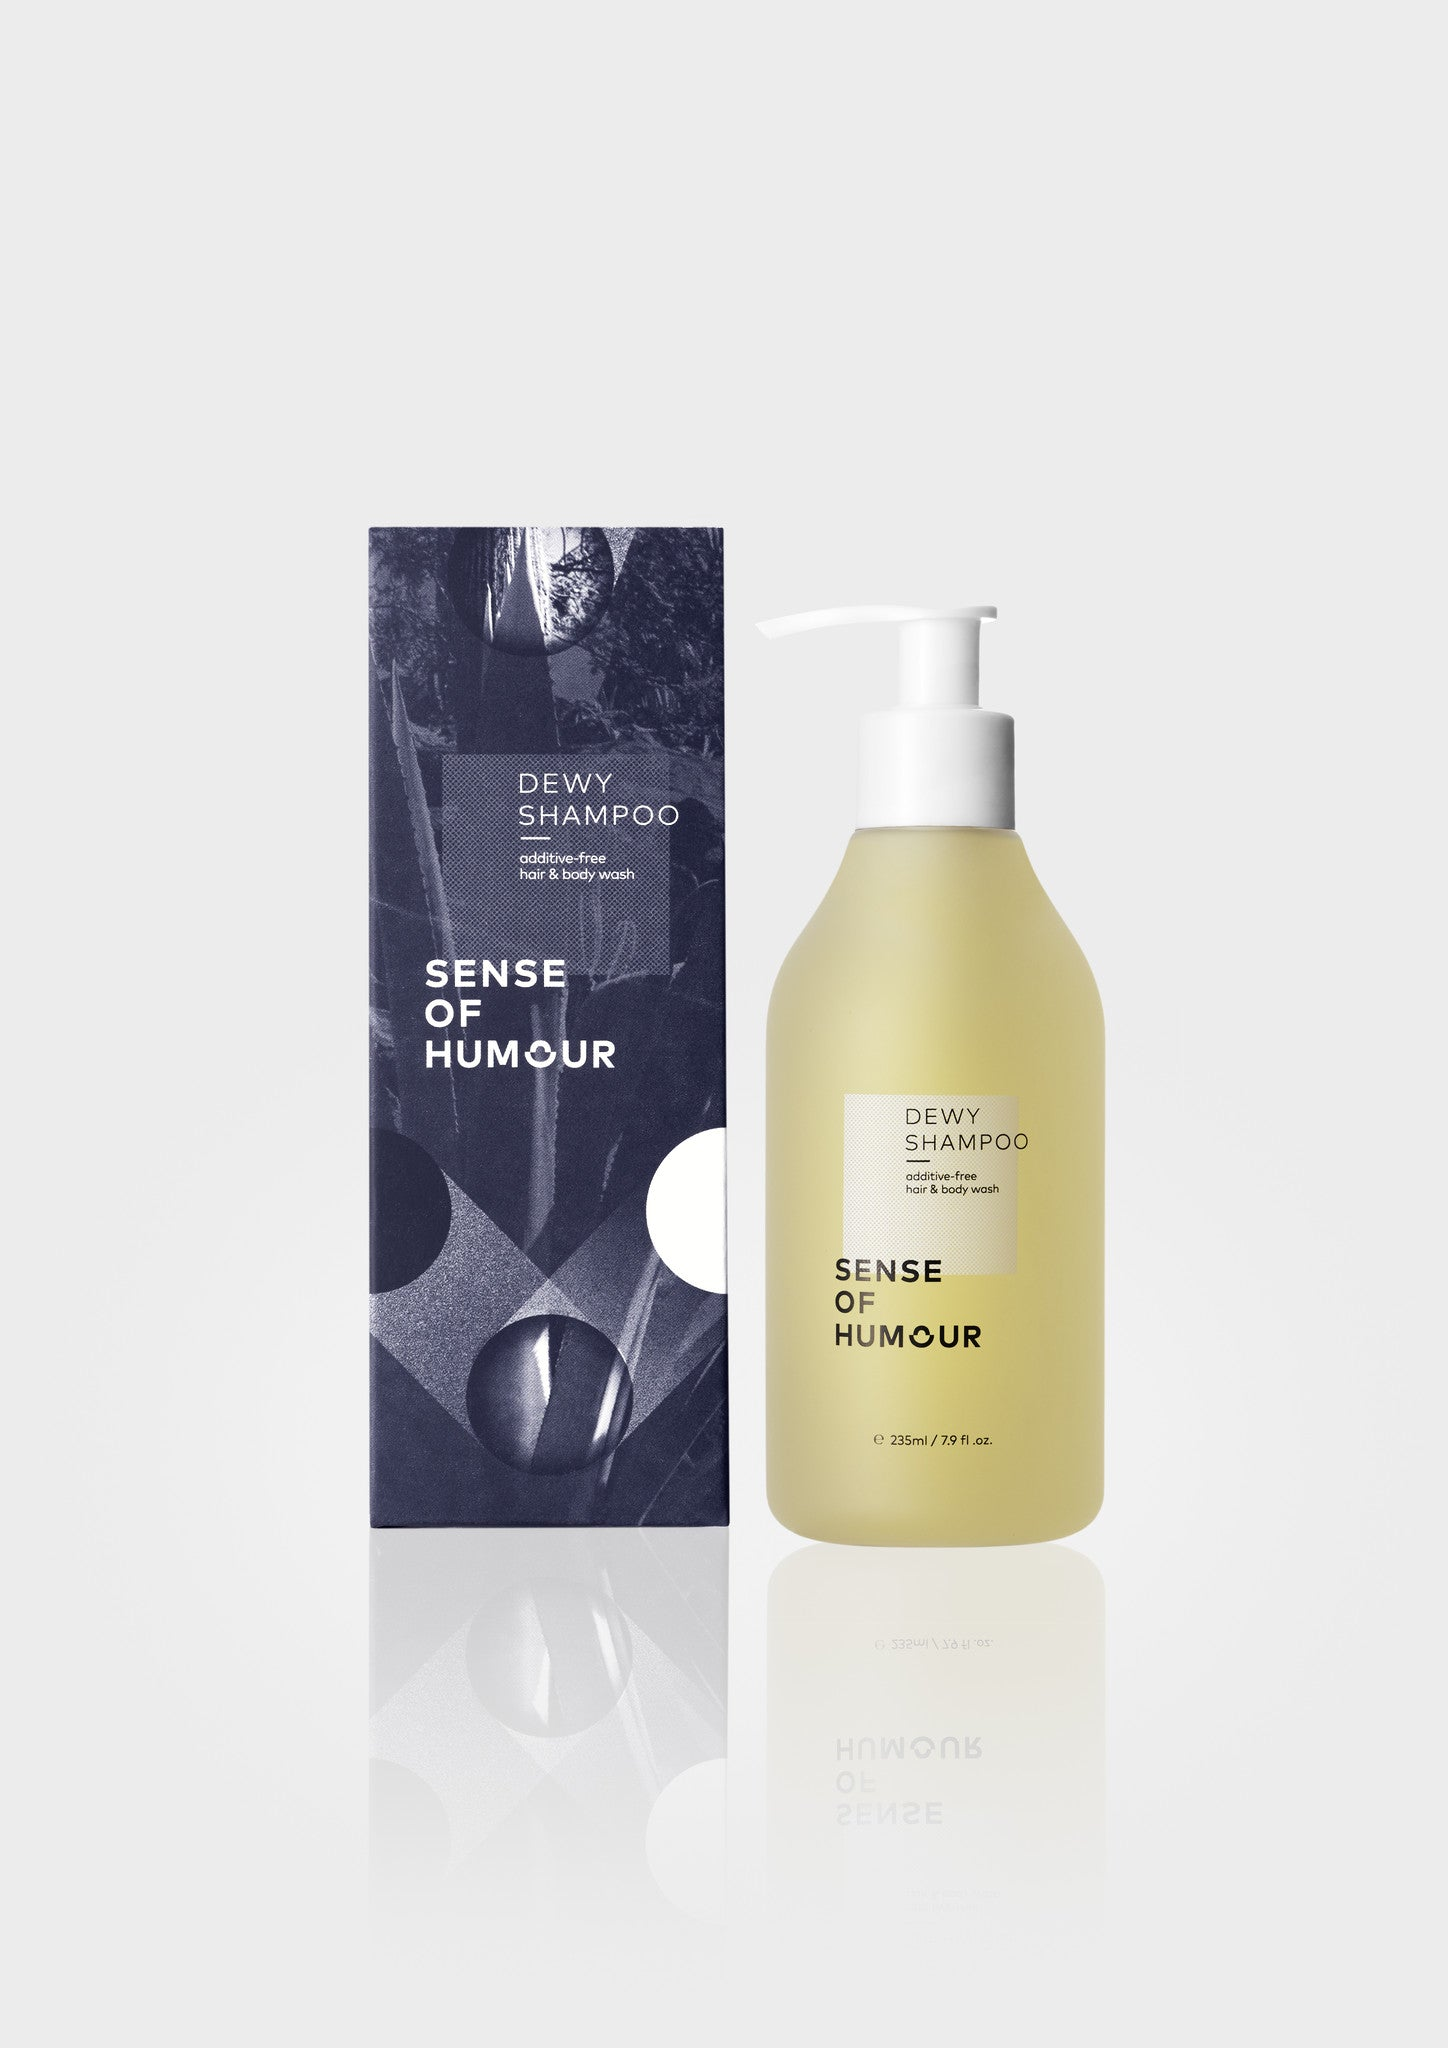 DEWY SHAMPOO additive-free hair & body wash